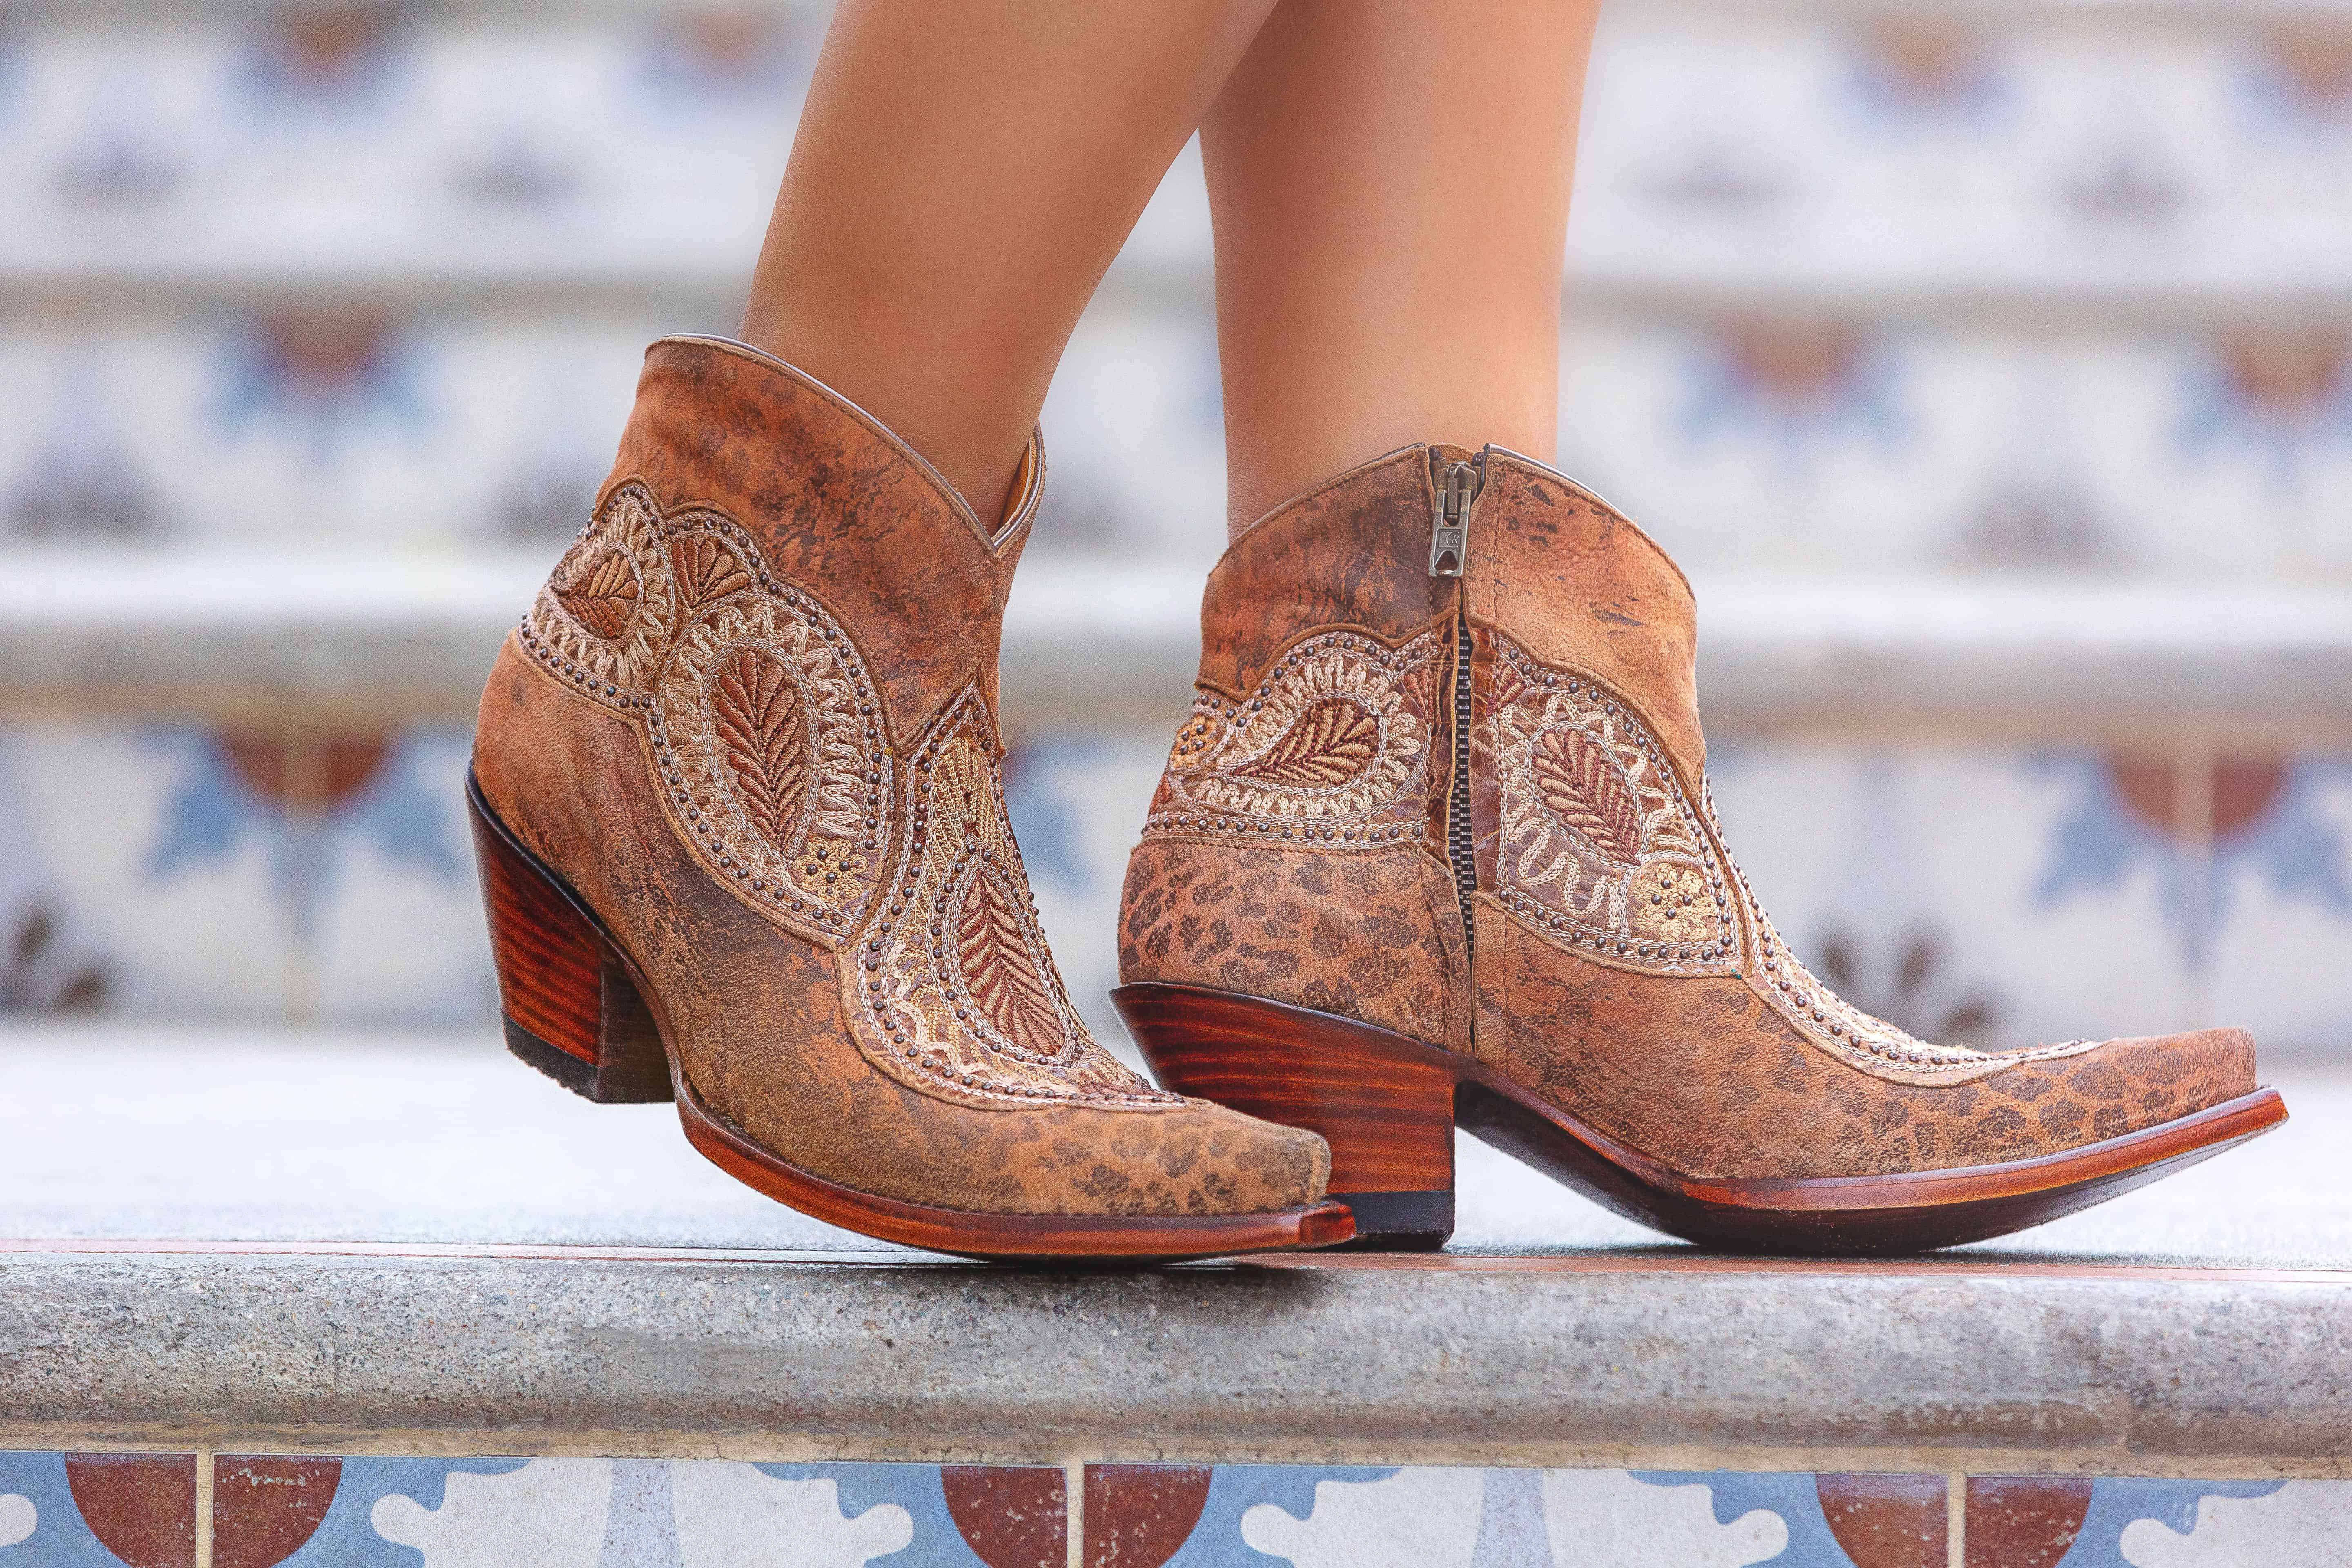 bianca bootie from Old gringo, so fresh and so spring boots